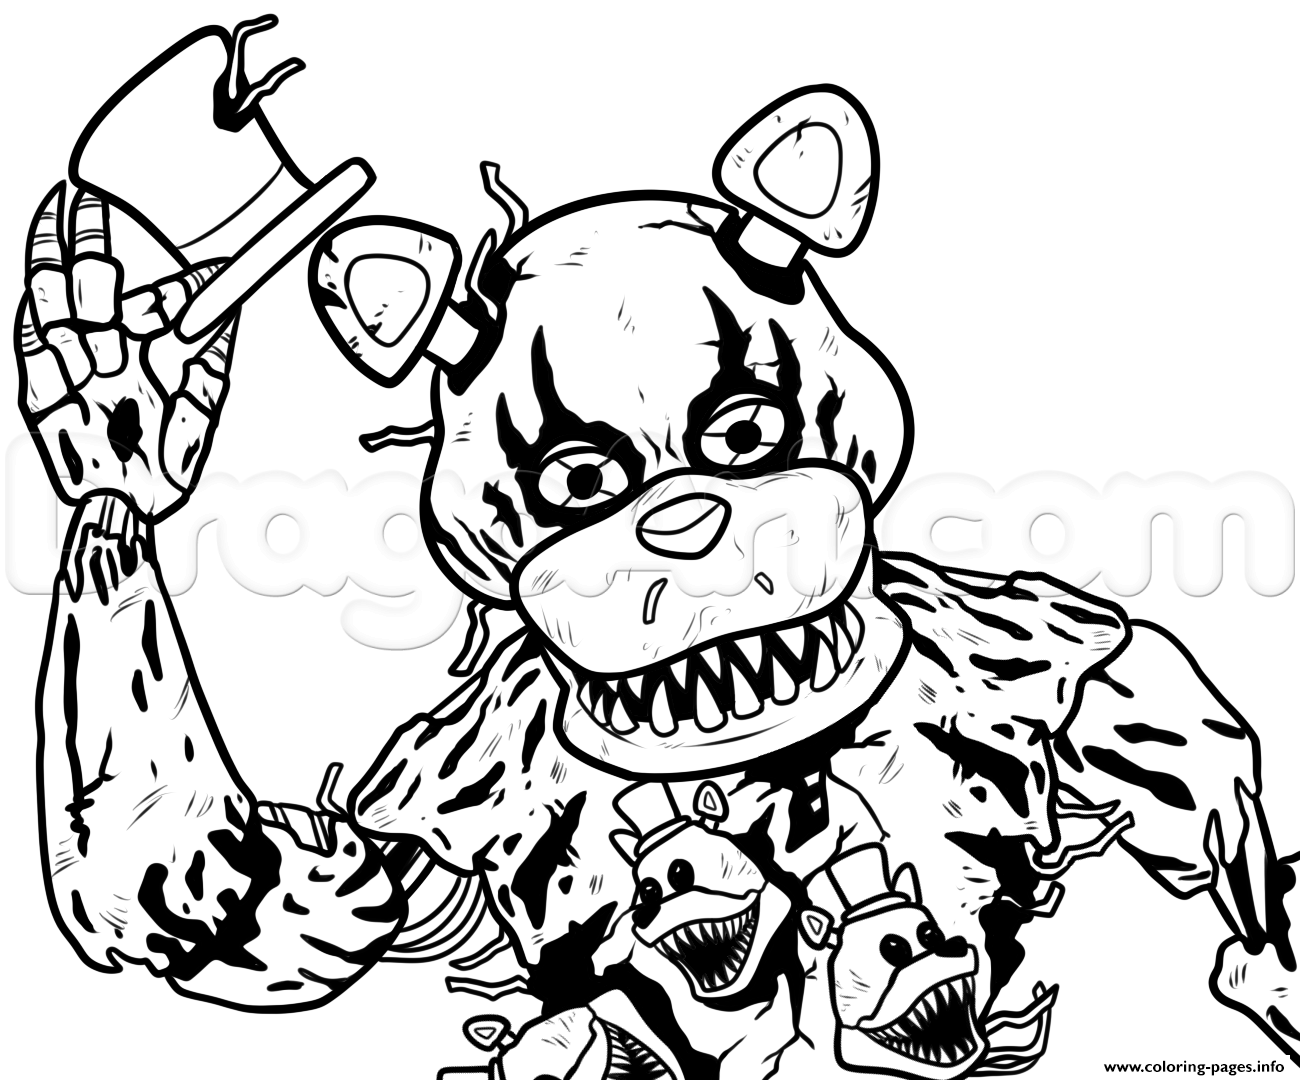 freddy fazbear coloring page - freddy fazbear coloring sheets coloring pages